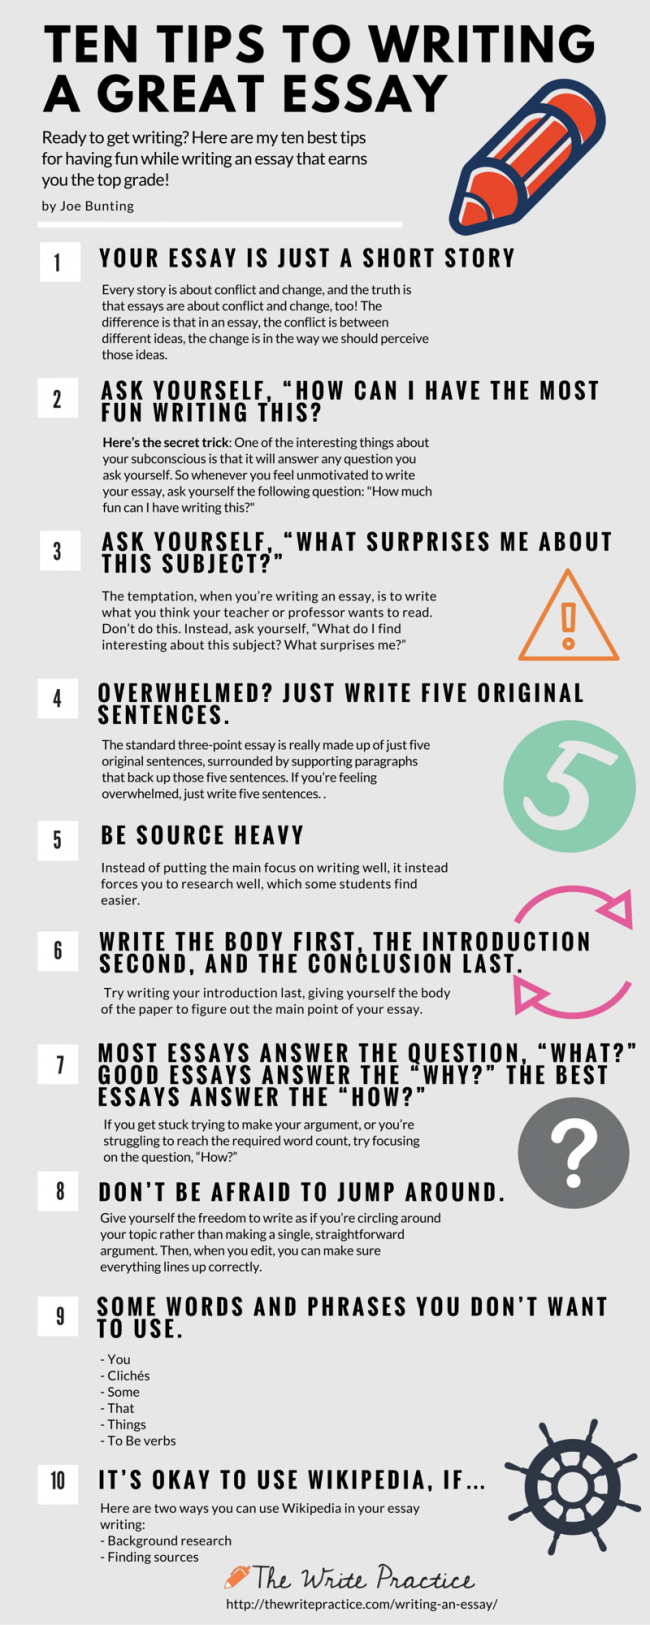 001 Essay Example Tips For Writing An Essay1 650x1625 To Write Marvelous A Good Sat Descriptive Narrative Full